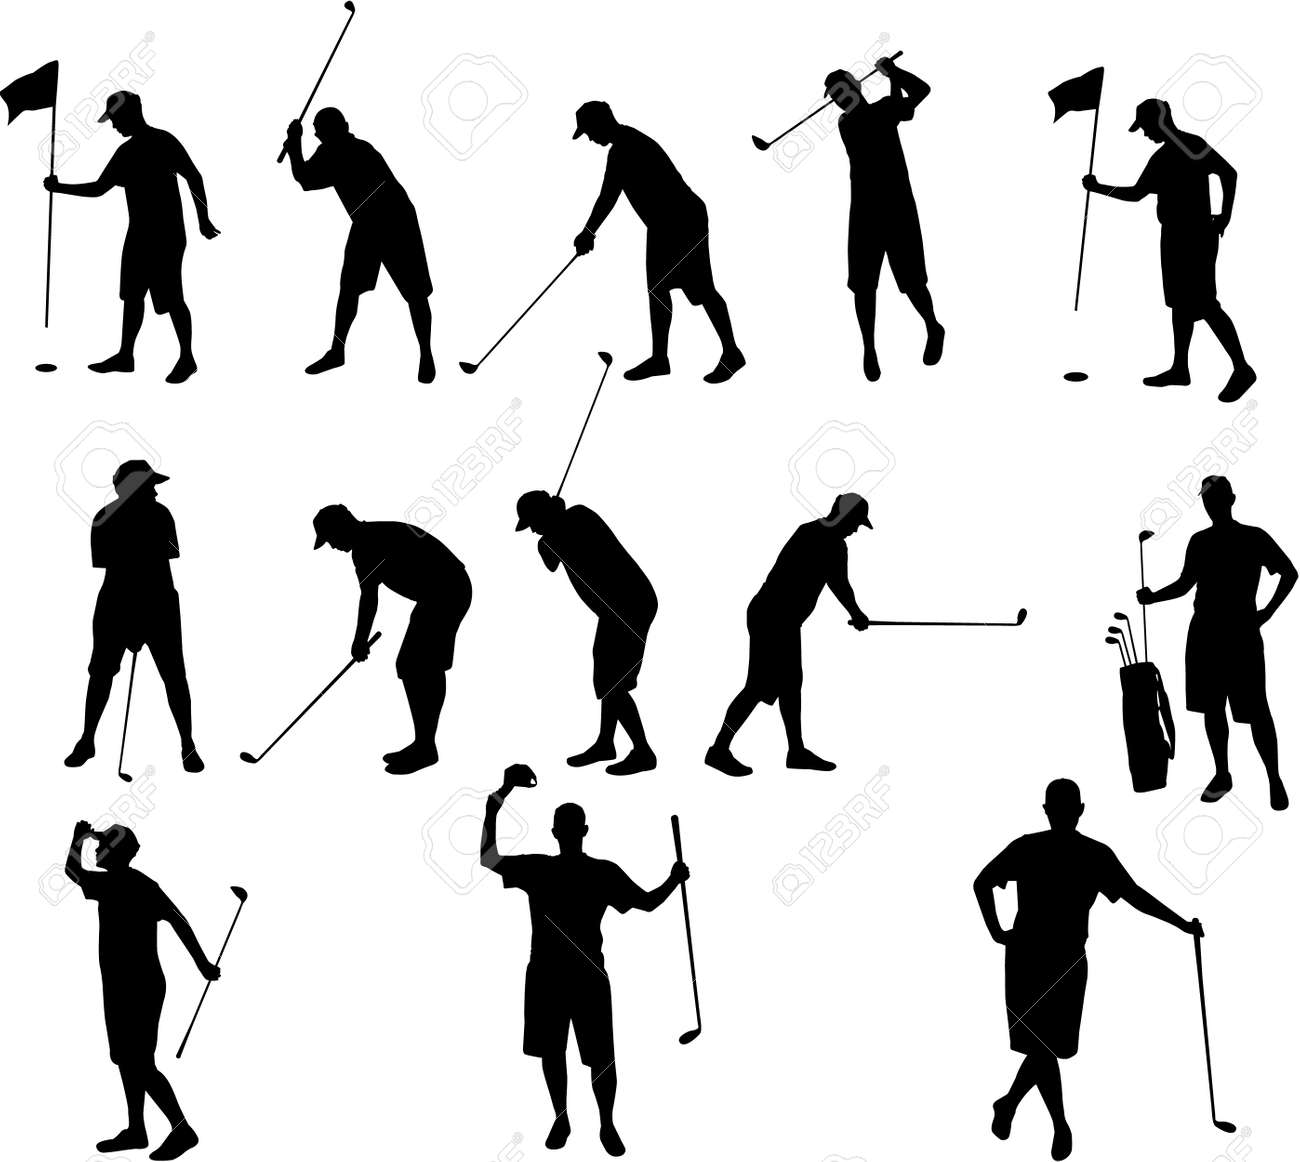 Golf Silhouettes Royalty Free Cliparts Vectors And Stock